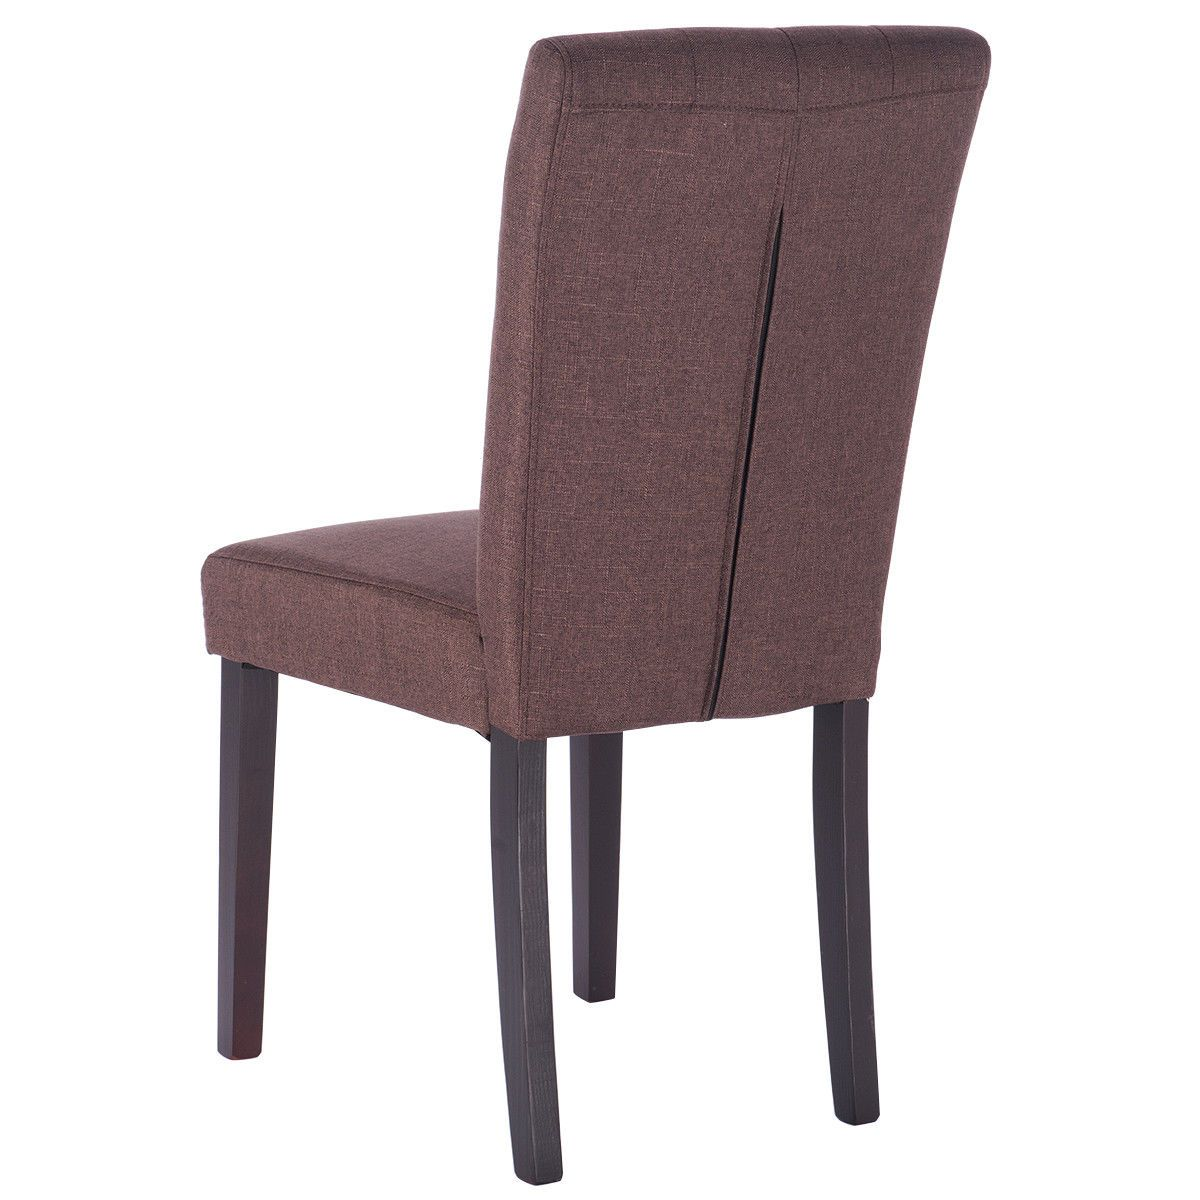 2 Piece Modern Accent Tufted Upholstered Dining Chairs